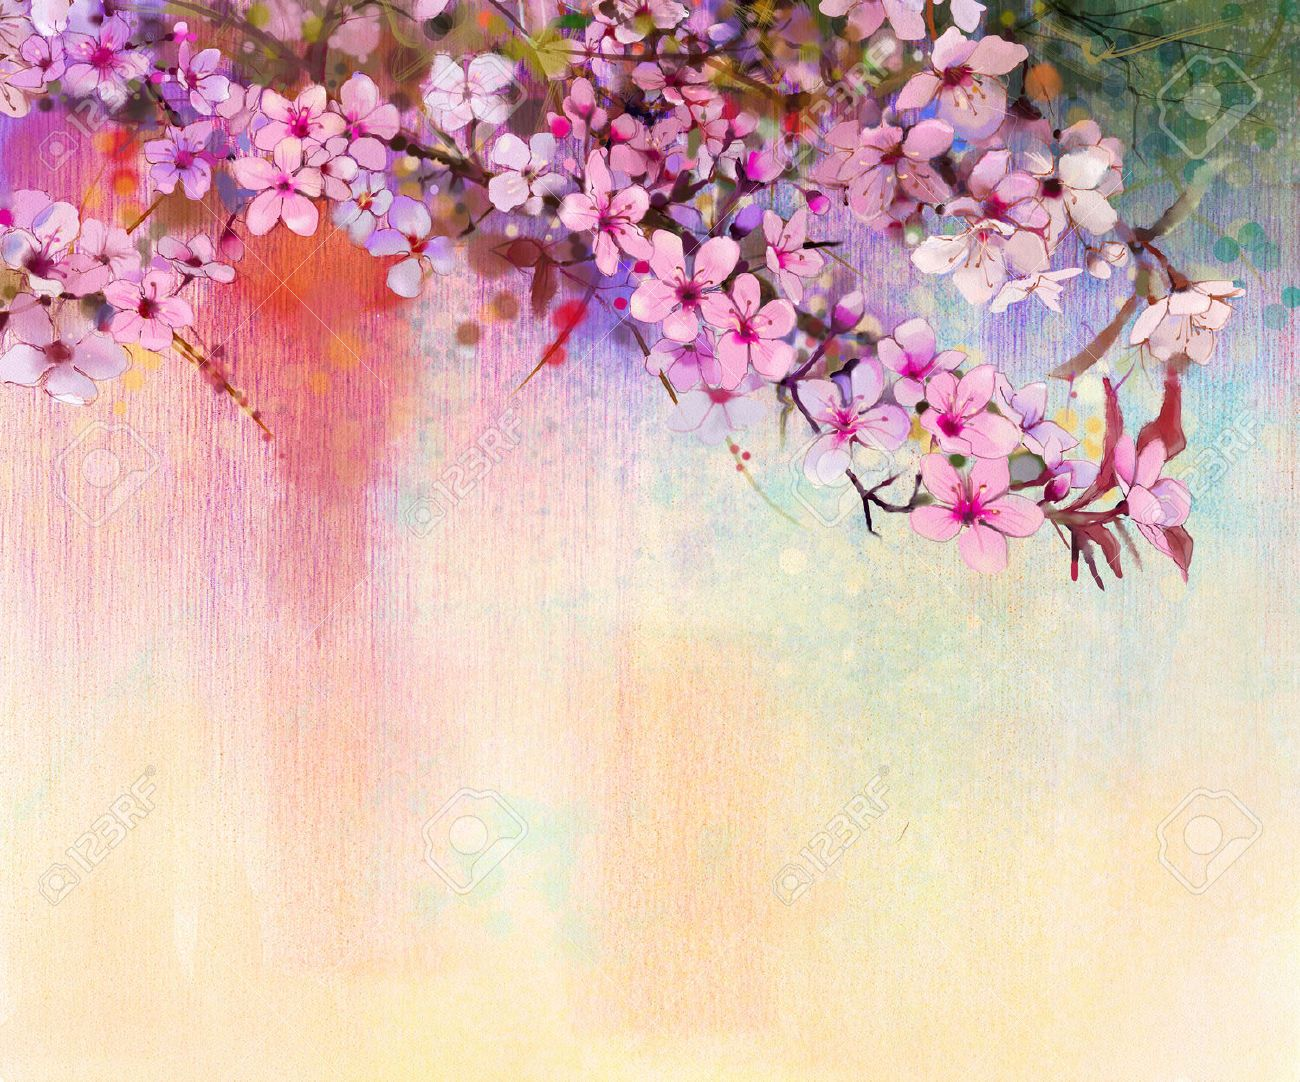 Watercolor Painting Cherry Blossoms Japanese Cherry Pink Watercolor Art Landscape Cherry Blossom Japan Watercolor Paintings